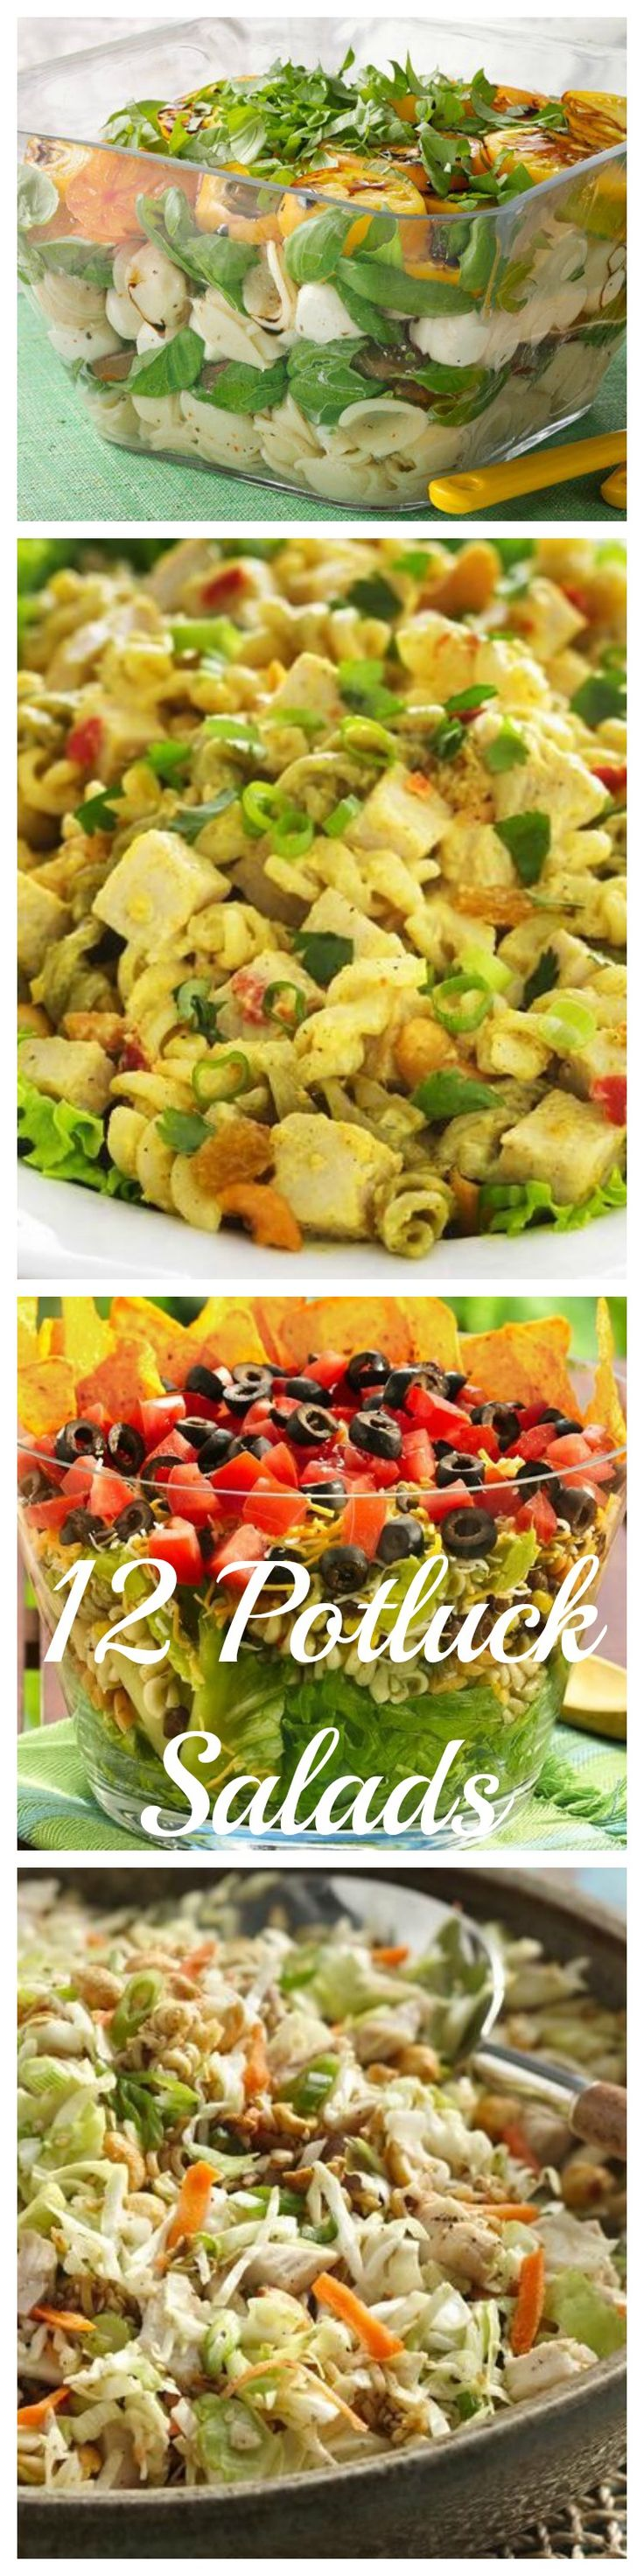 From potlucks to family reunions and backyard barbecues, you can never have enough killer pasta salad recipes. These are the tried-and-true favorites we come back to again and again.